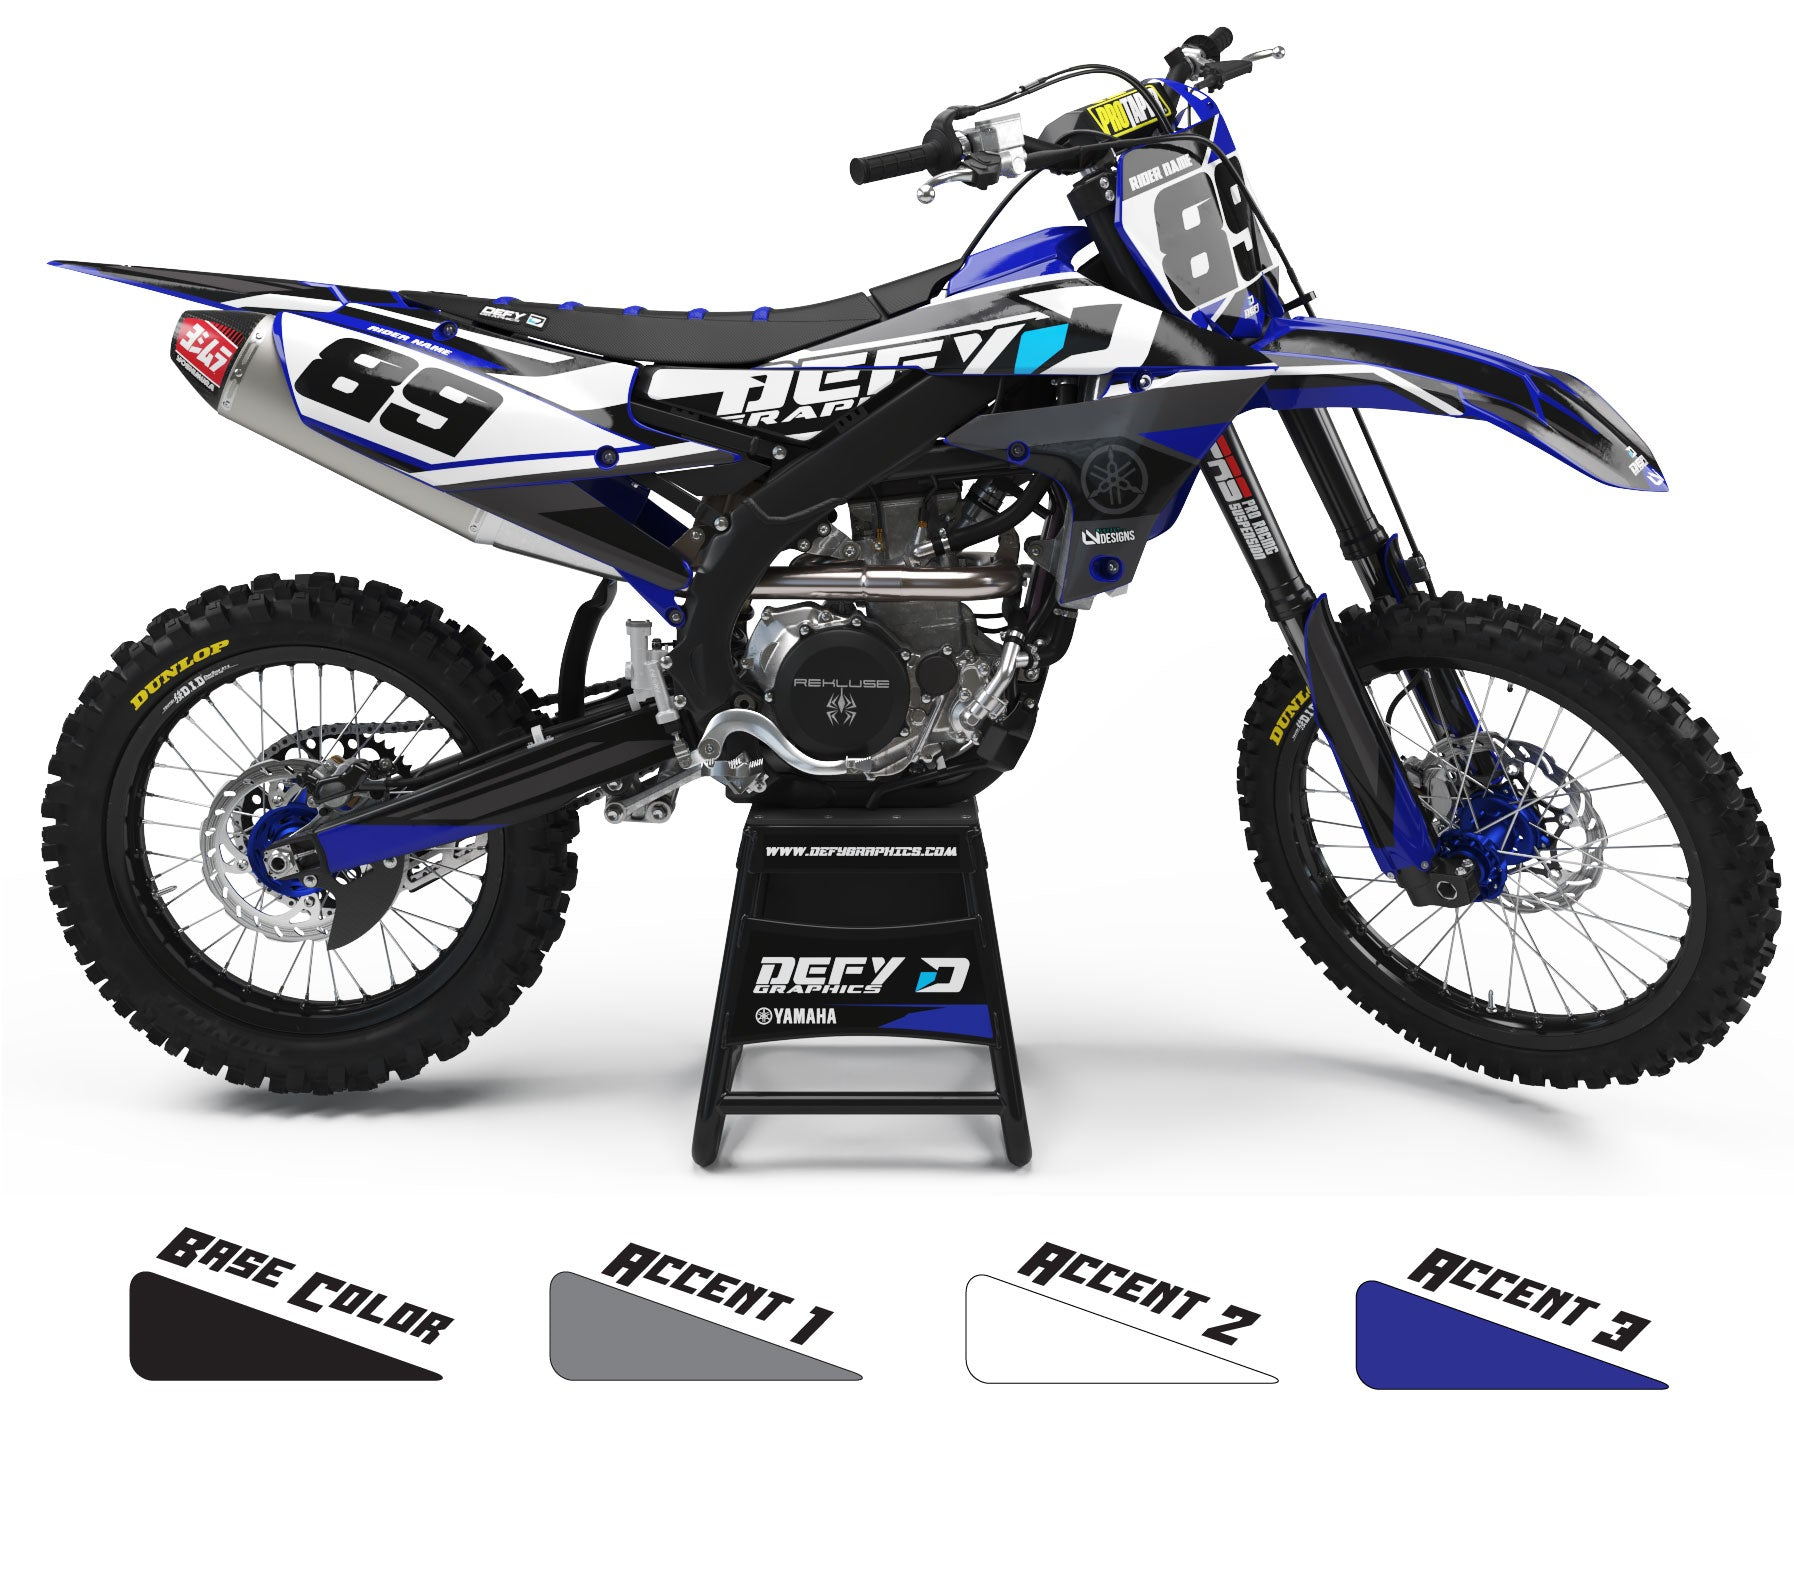 V2 TEAM SERIES - Yamaha